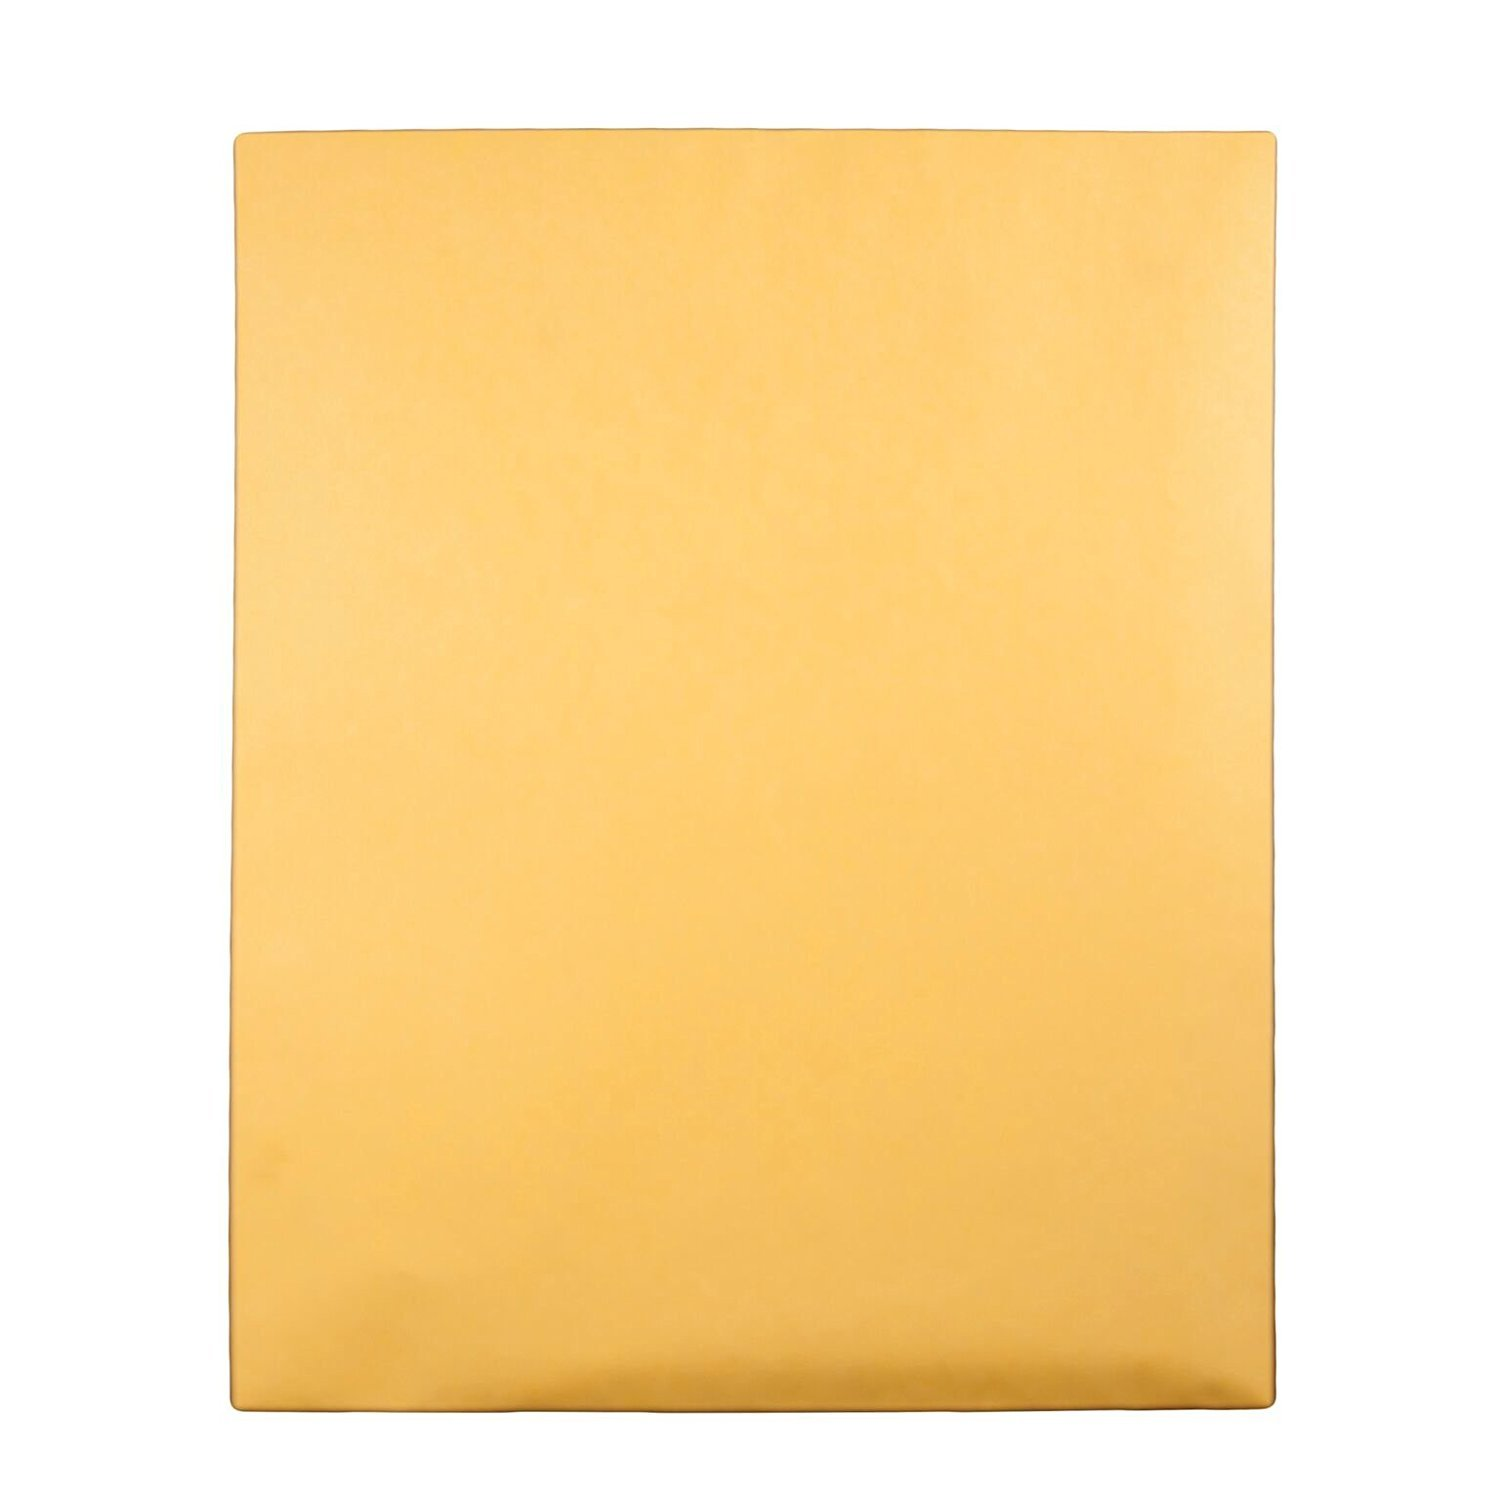 Quality Park 42354 Quality Park Jumbo Size Kraft Envelopes, 14x18, Brown Kraft, 25/Box (4 X 25 Pack)